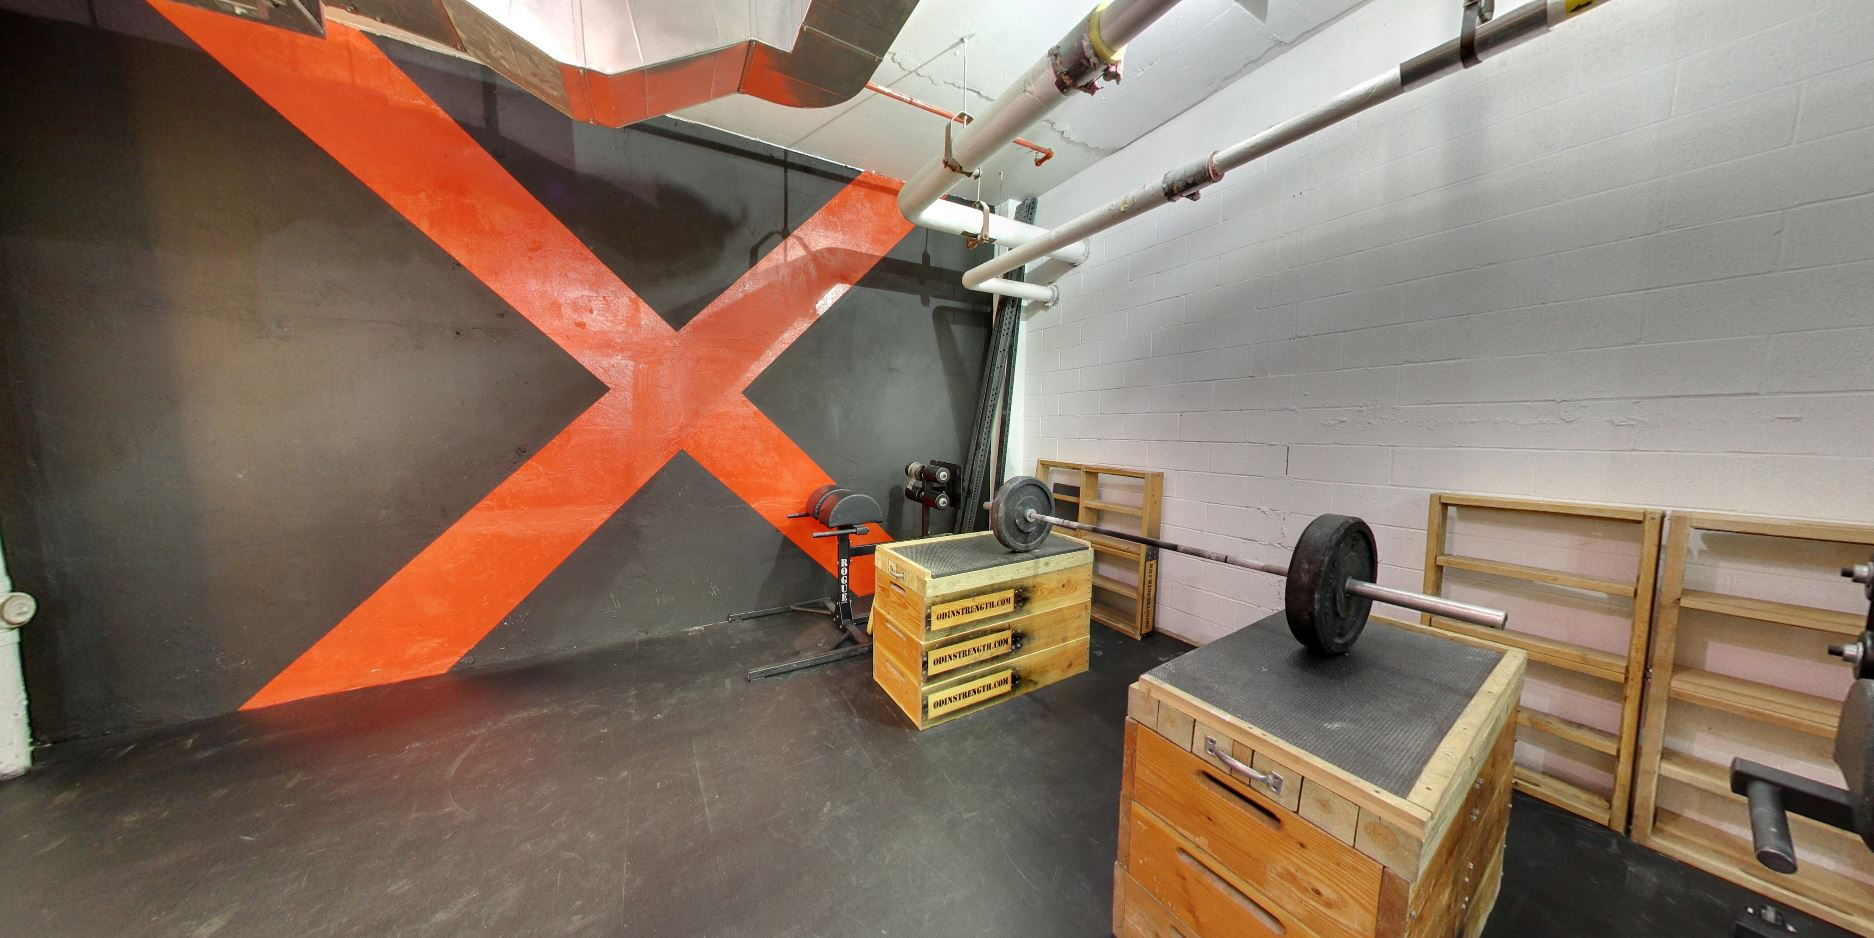 Weights resting over boxes with a giant orange red cross painted over a black wall as part of the Crossfit brand in it's Tribeca location. MEP designed by 2L Engineering.